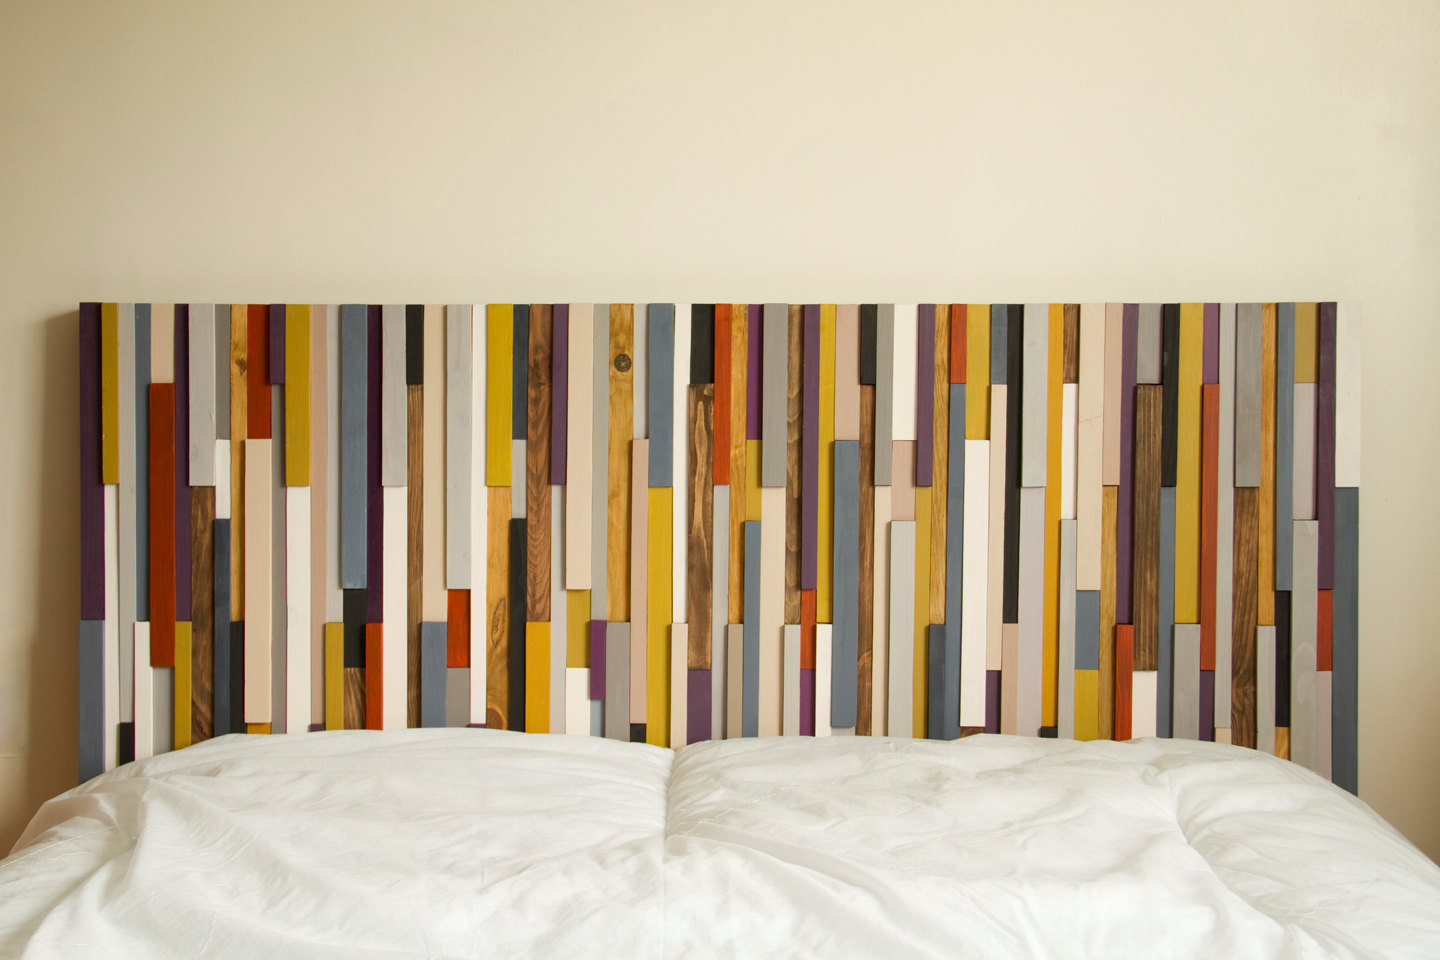 Fullsize Of Wood Wall Art